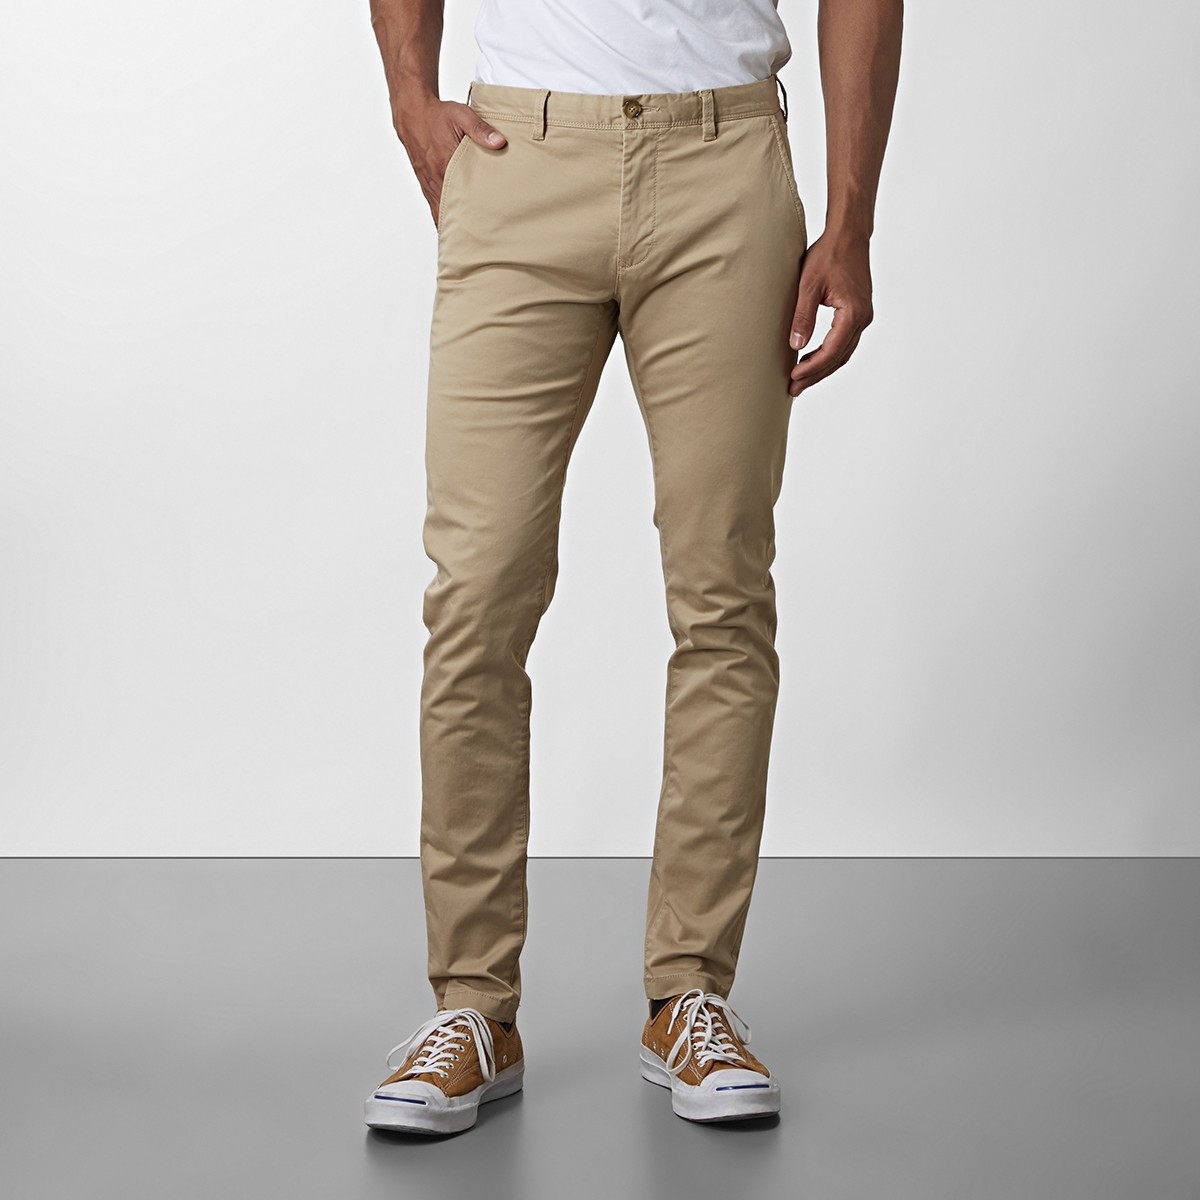 Chinos Barton Super Slim Fit - Beige | East West | Brothers.se